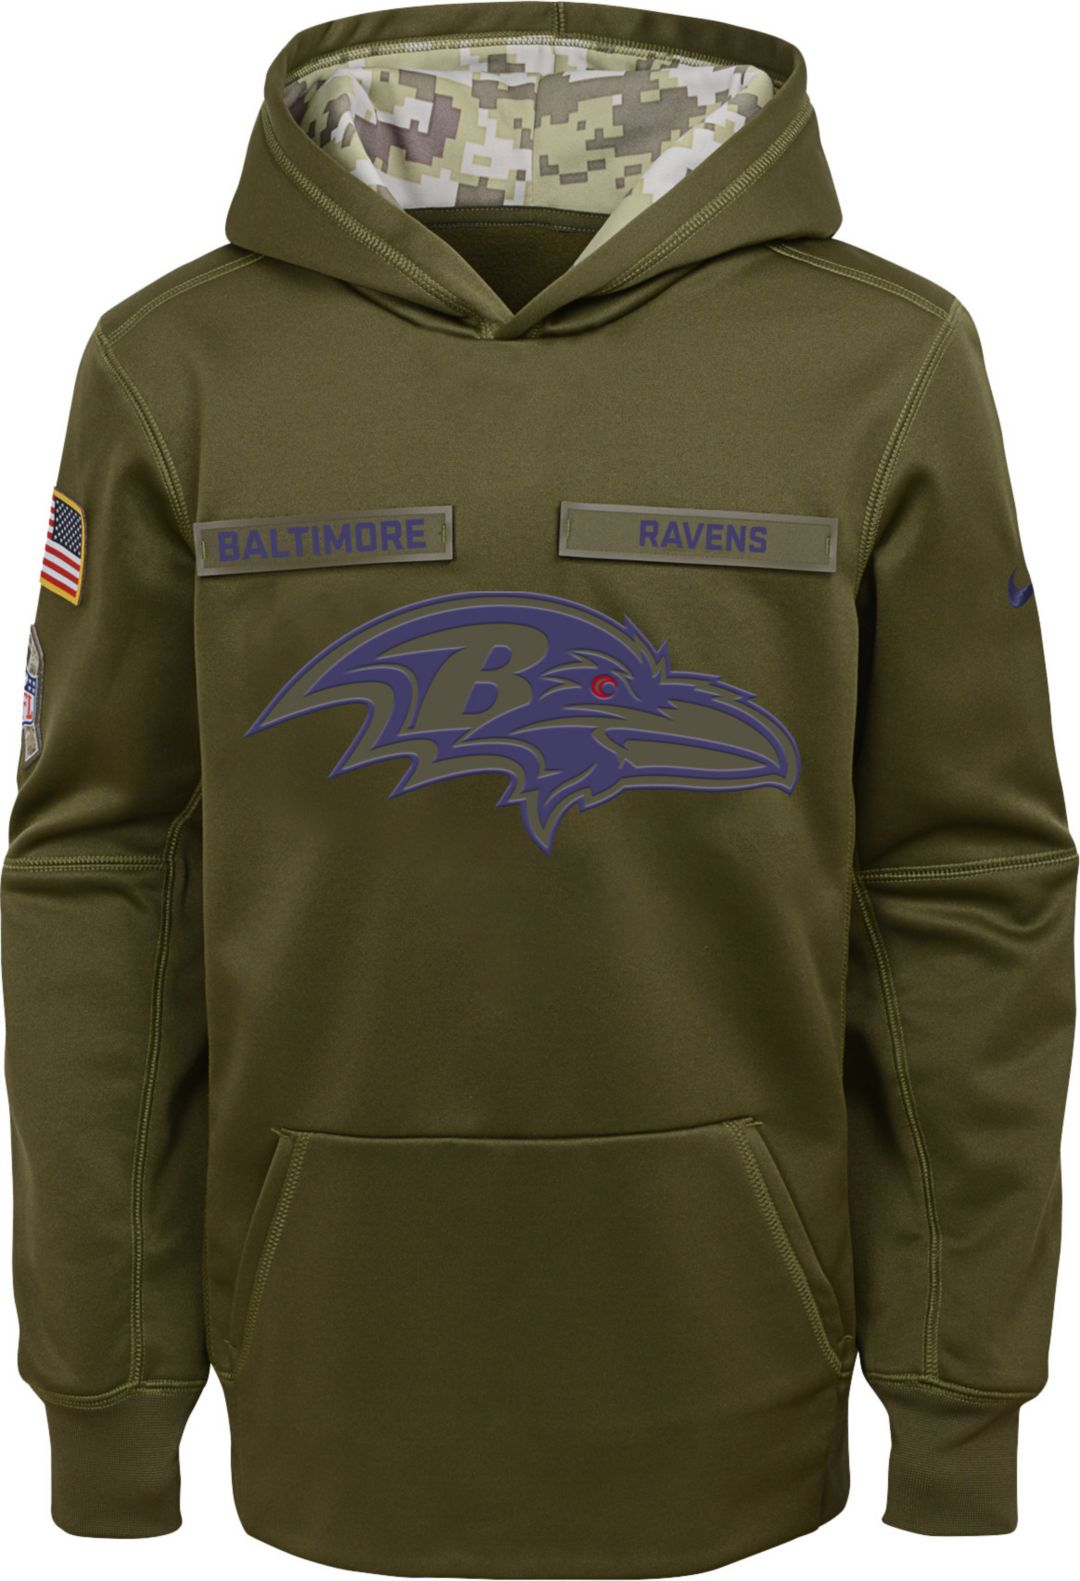 b86cf88c7 Nike Youth Salute to Service Baltimore Ravens Therma-FIT Olive ...